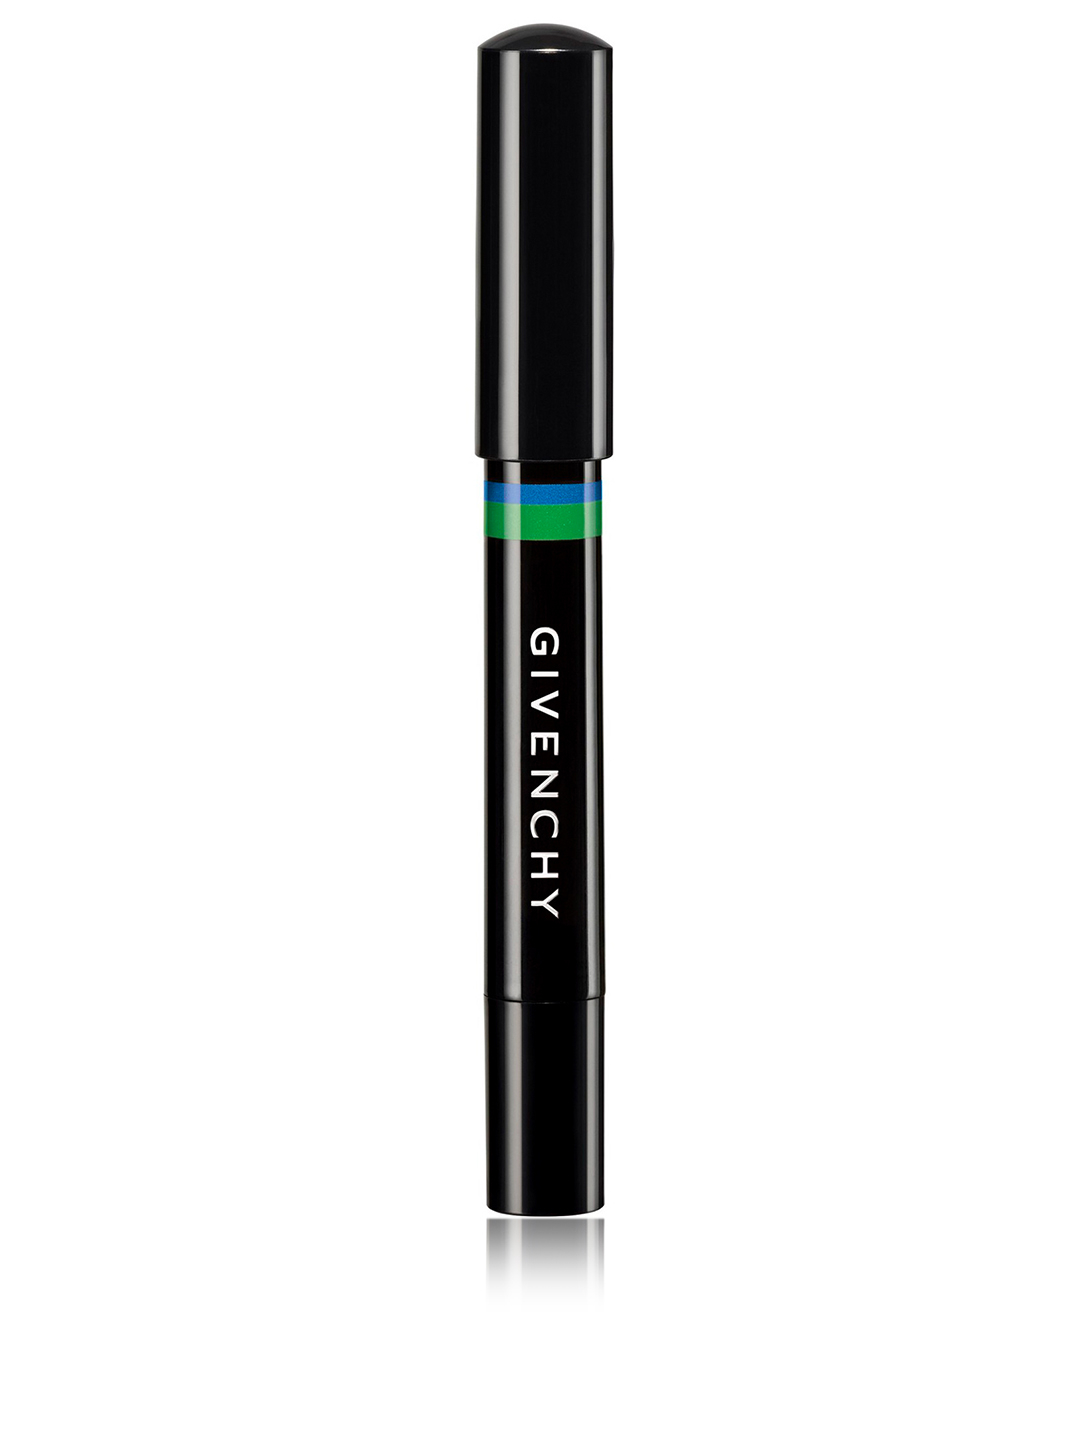 GIVENCHY Dual Liner Two-Tone Eyeshadow & Liner - Spring 2019 Limited Edition Beauty Multi